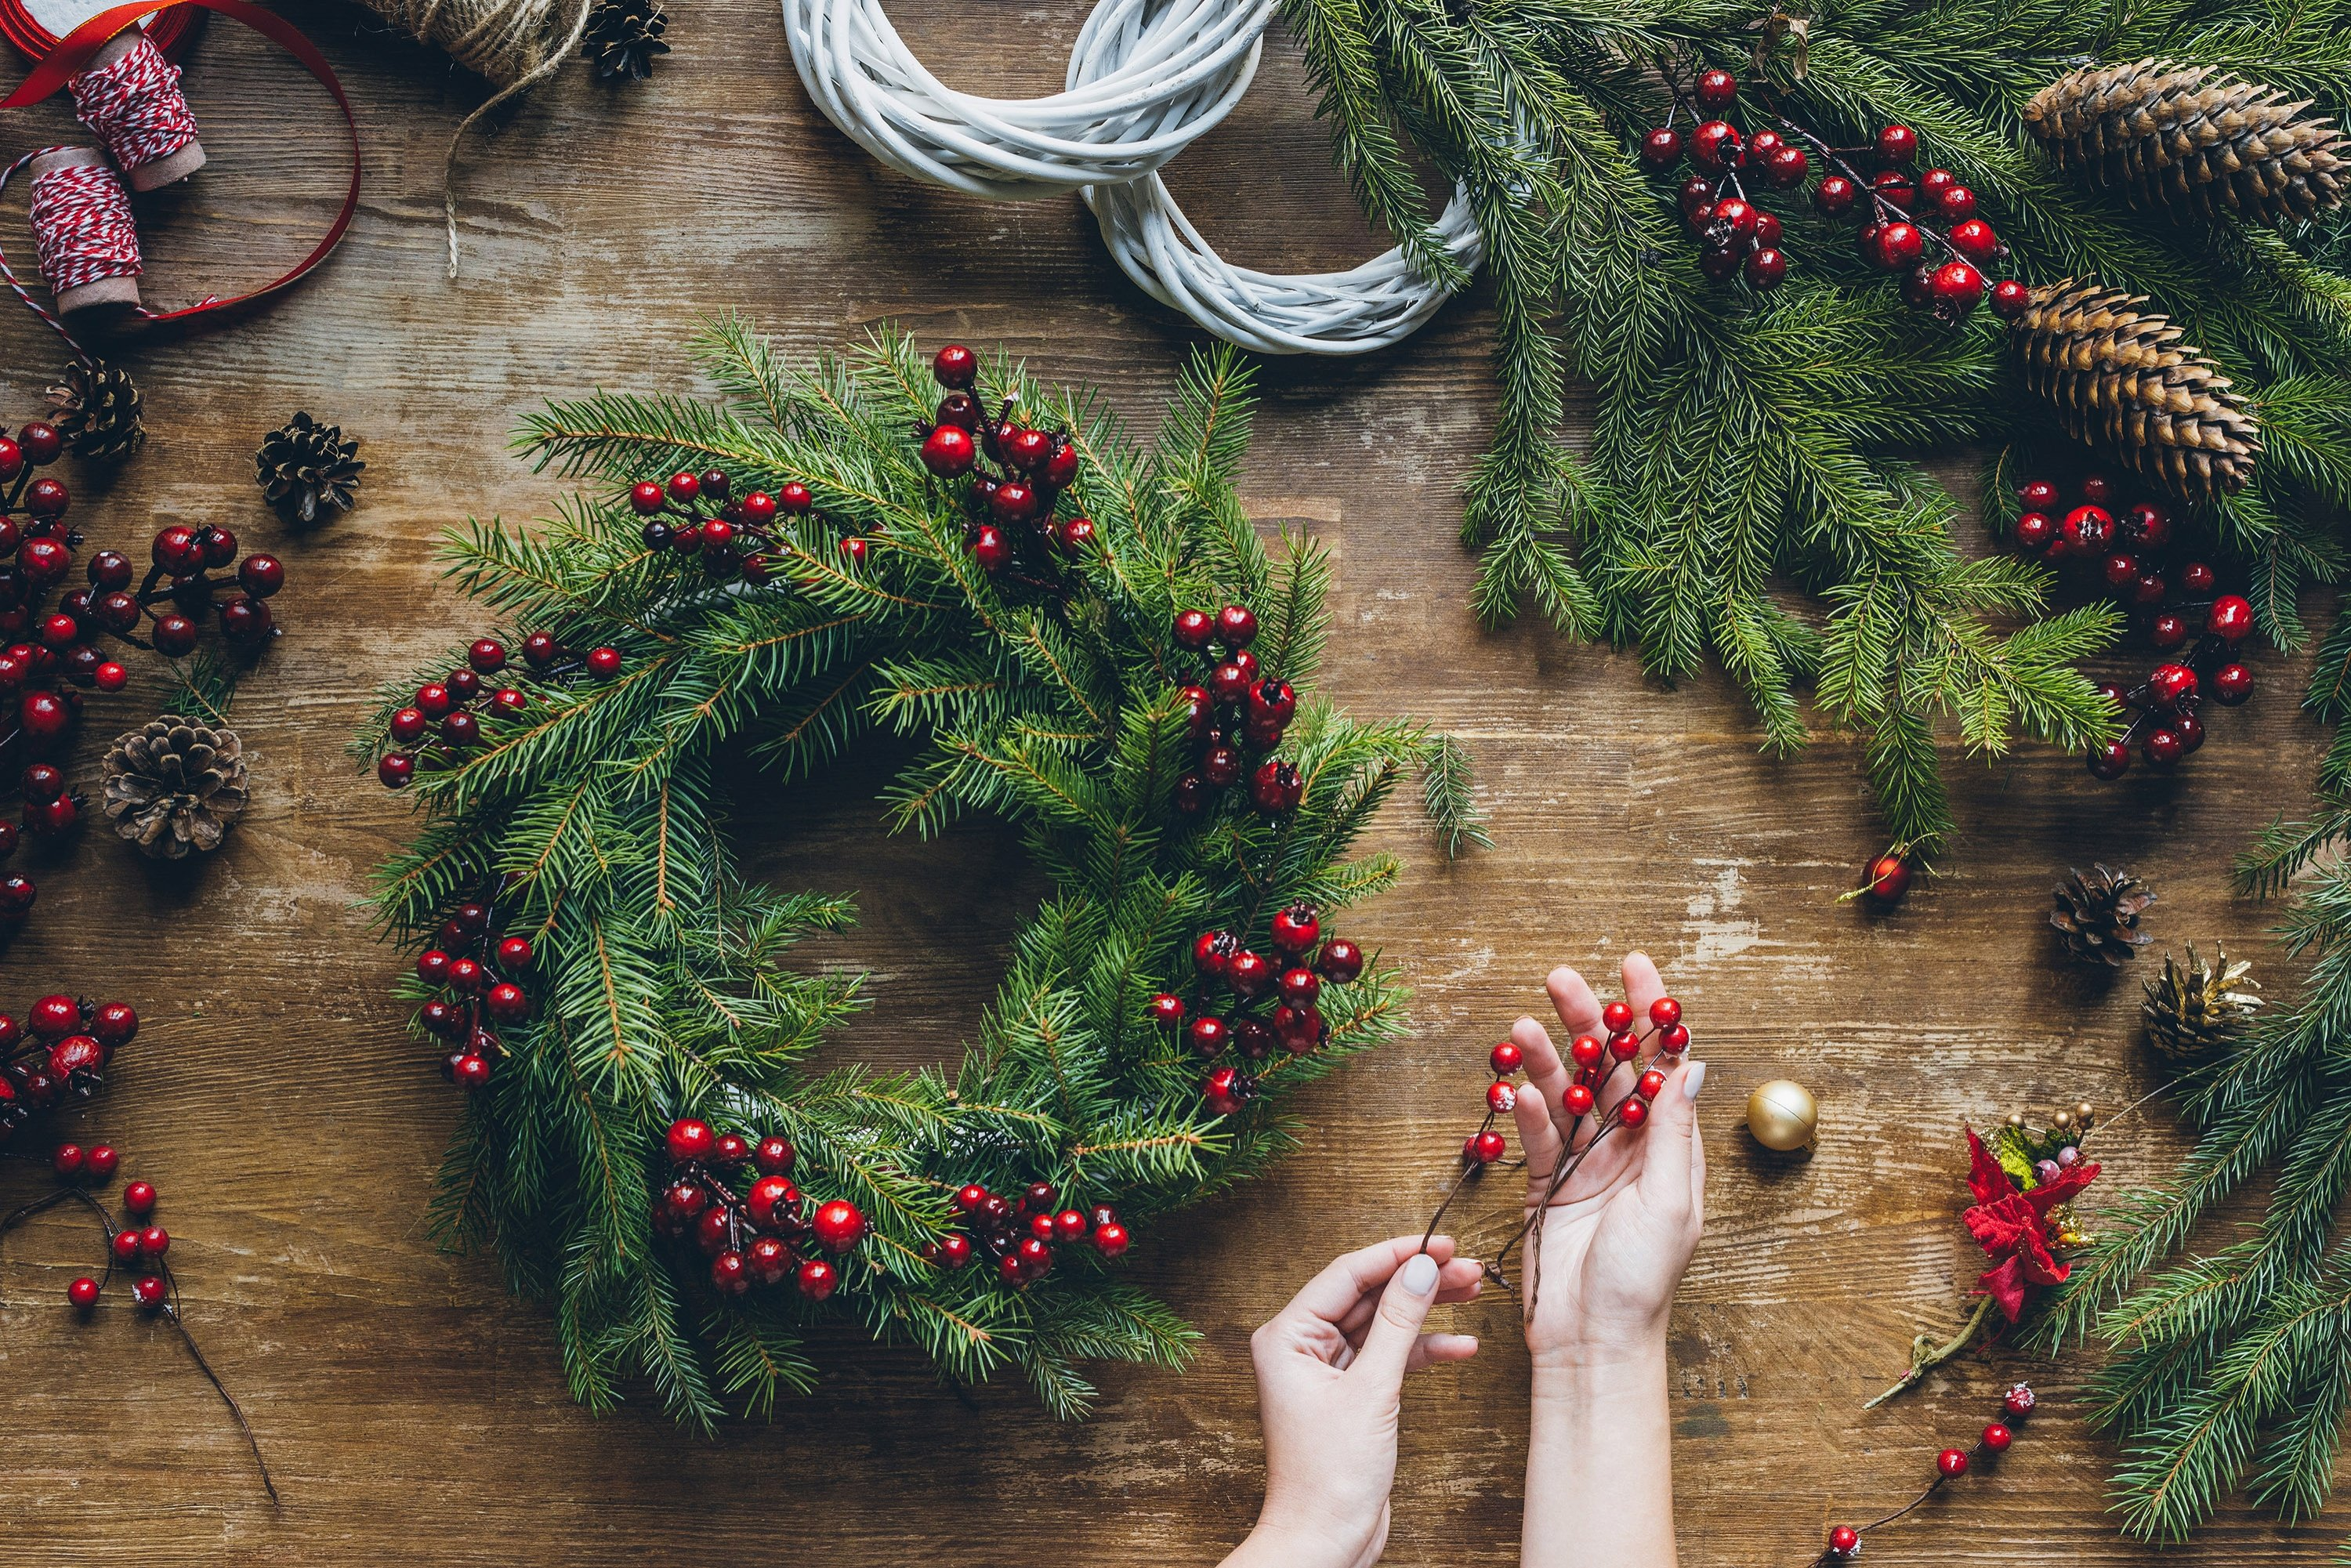 You can find artificial evergreens and holly berries in decoration shops to make your own. (Shutterstock Photo)